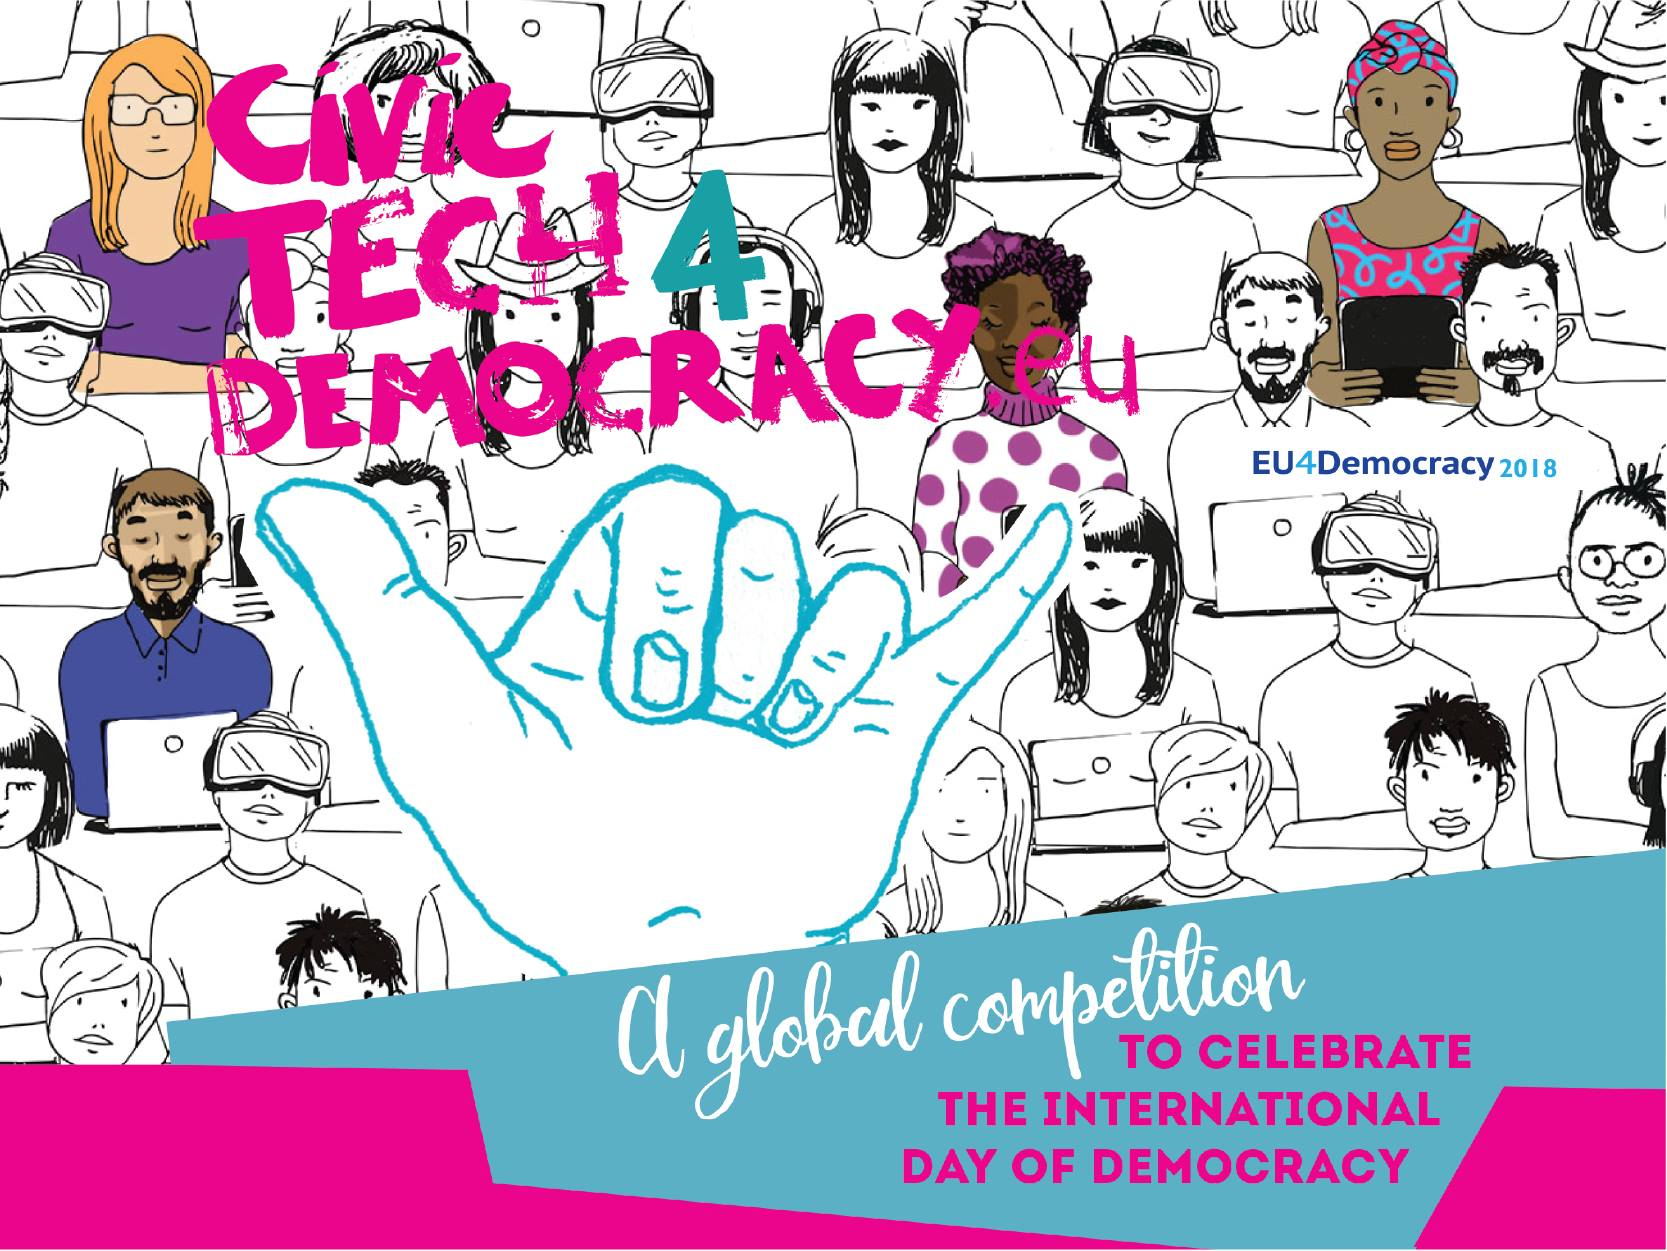 #CivicTech4Democracy: The EU's Global Competition to Celebrate the  International Day of Democracy – apply before 31 July 2018!